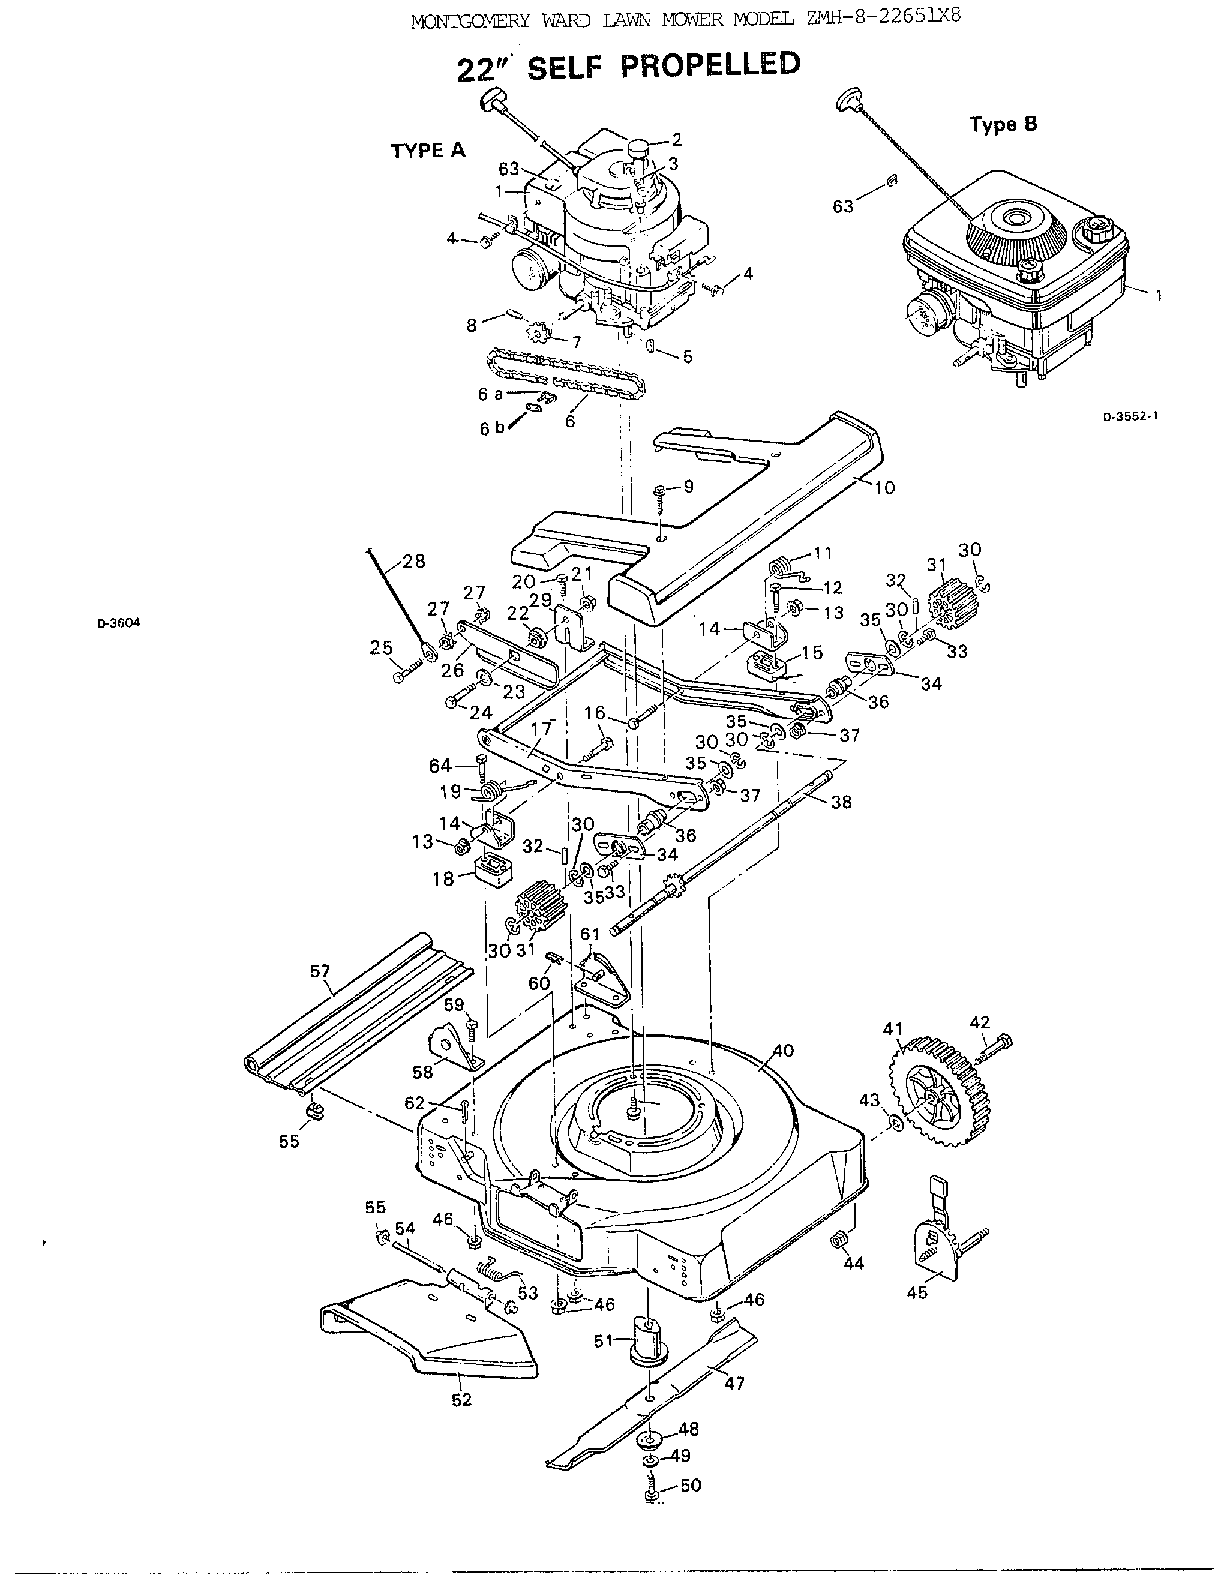 Scott S Self Propelled Lawn Mower Parts Diagram. Diagram